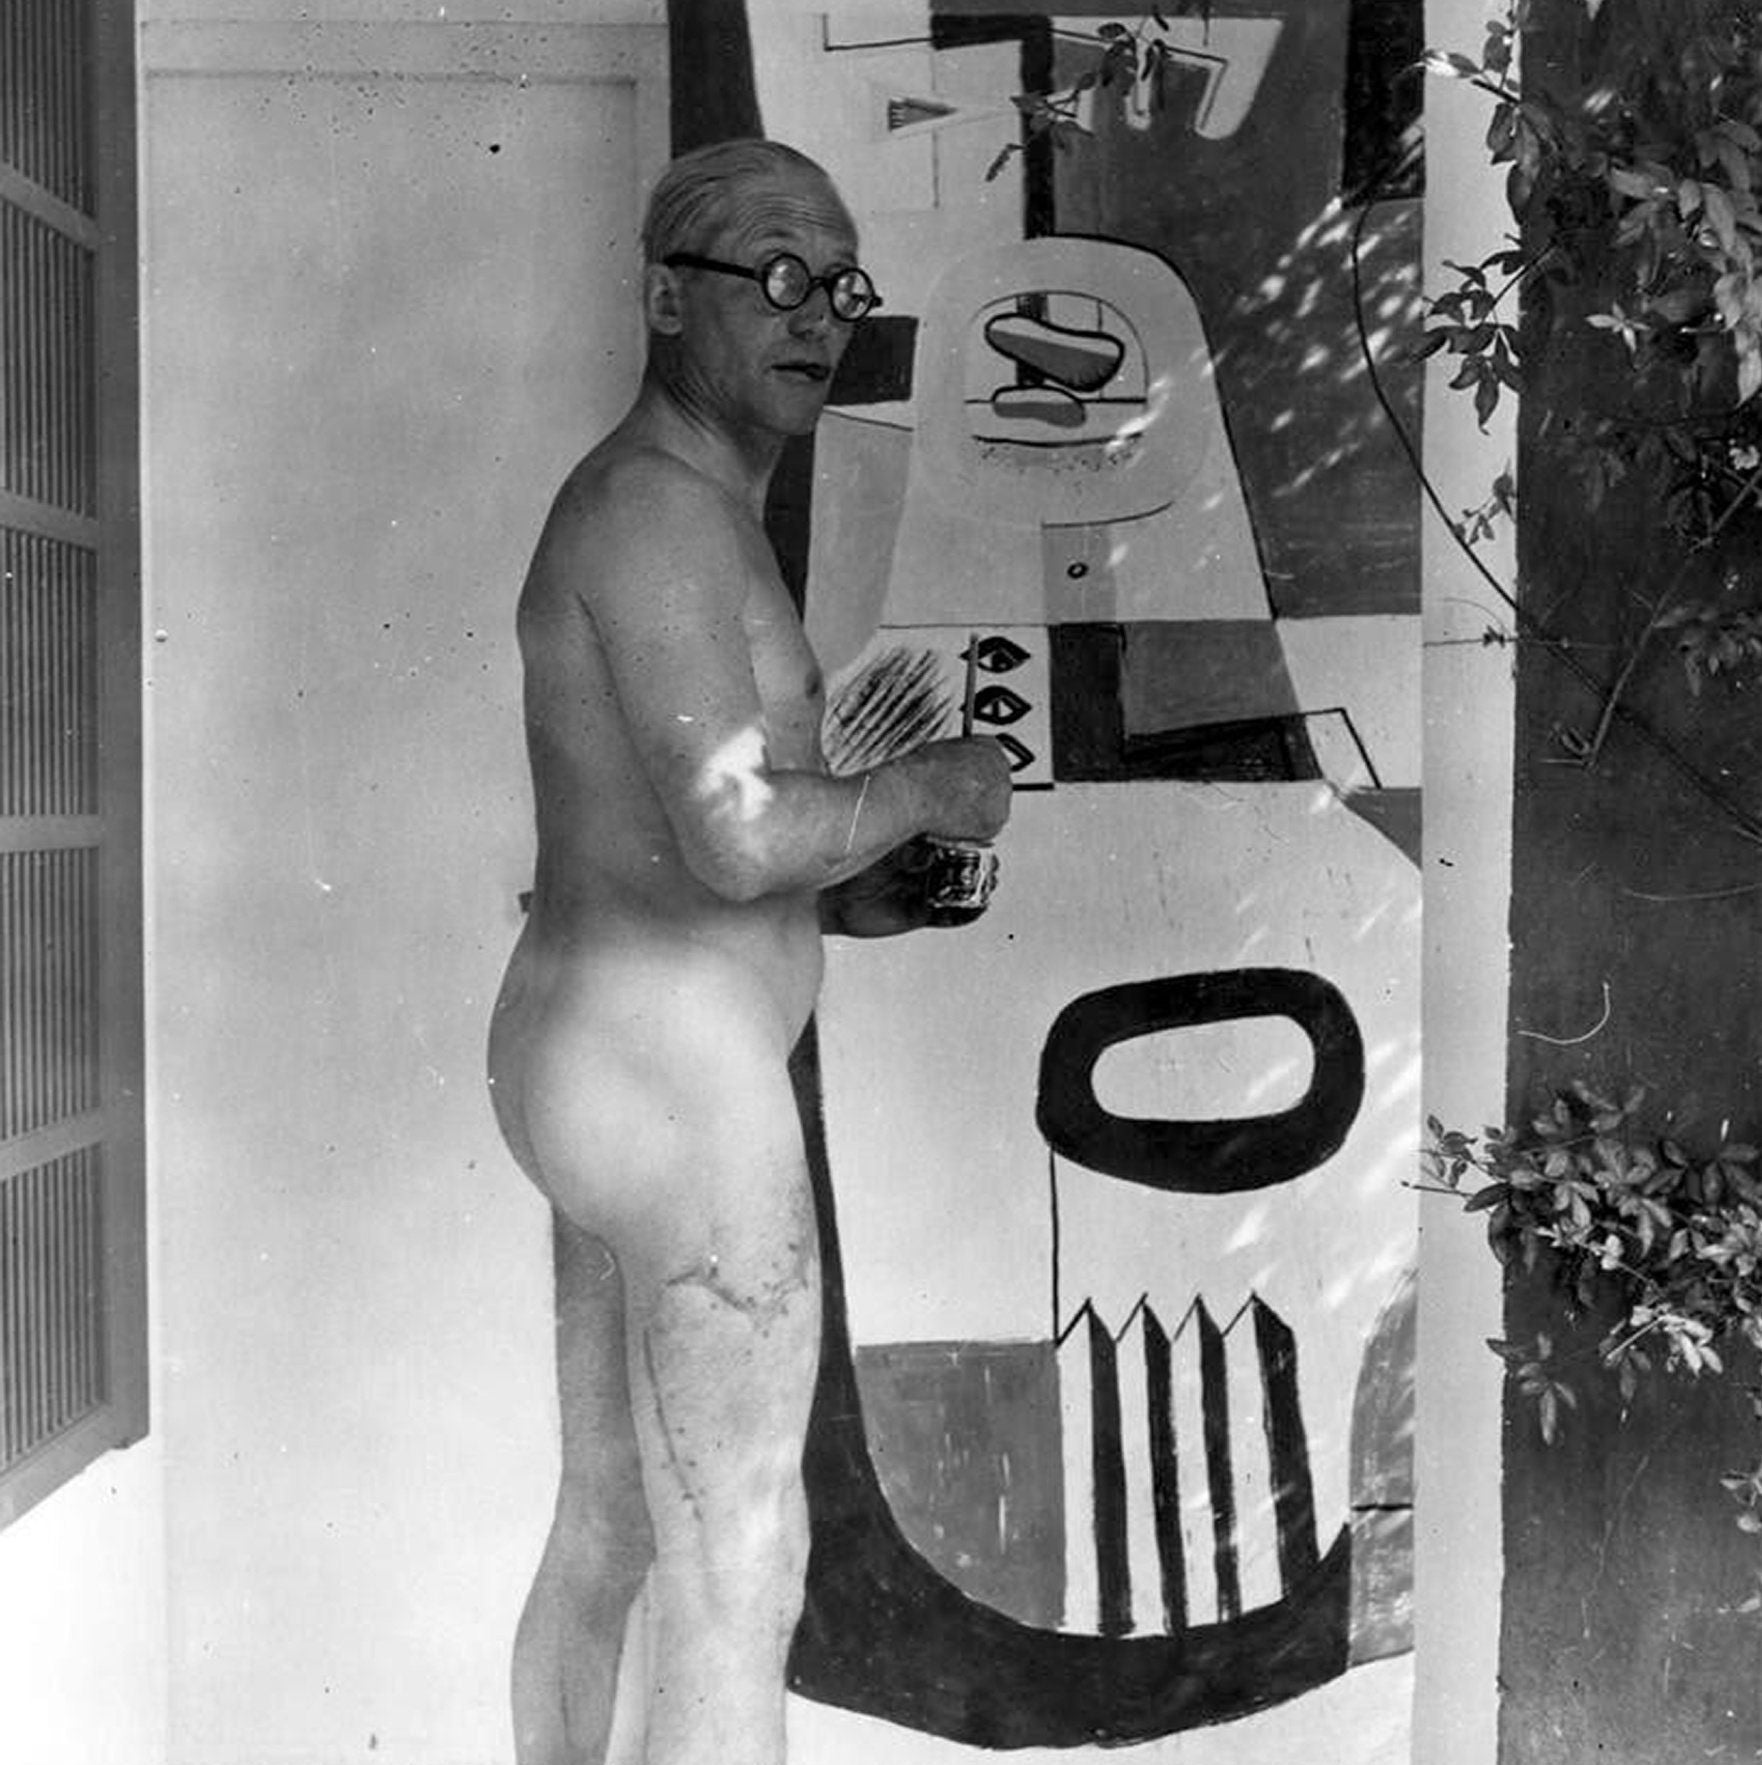 Le Corbusier vandalizing Eileen Gray's E-1027 with mural nude